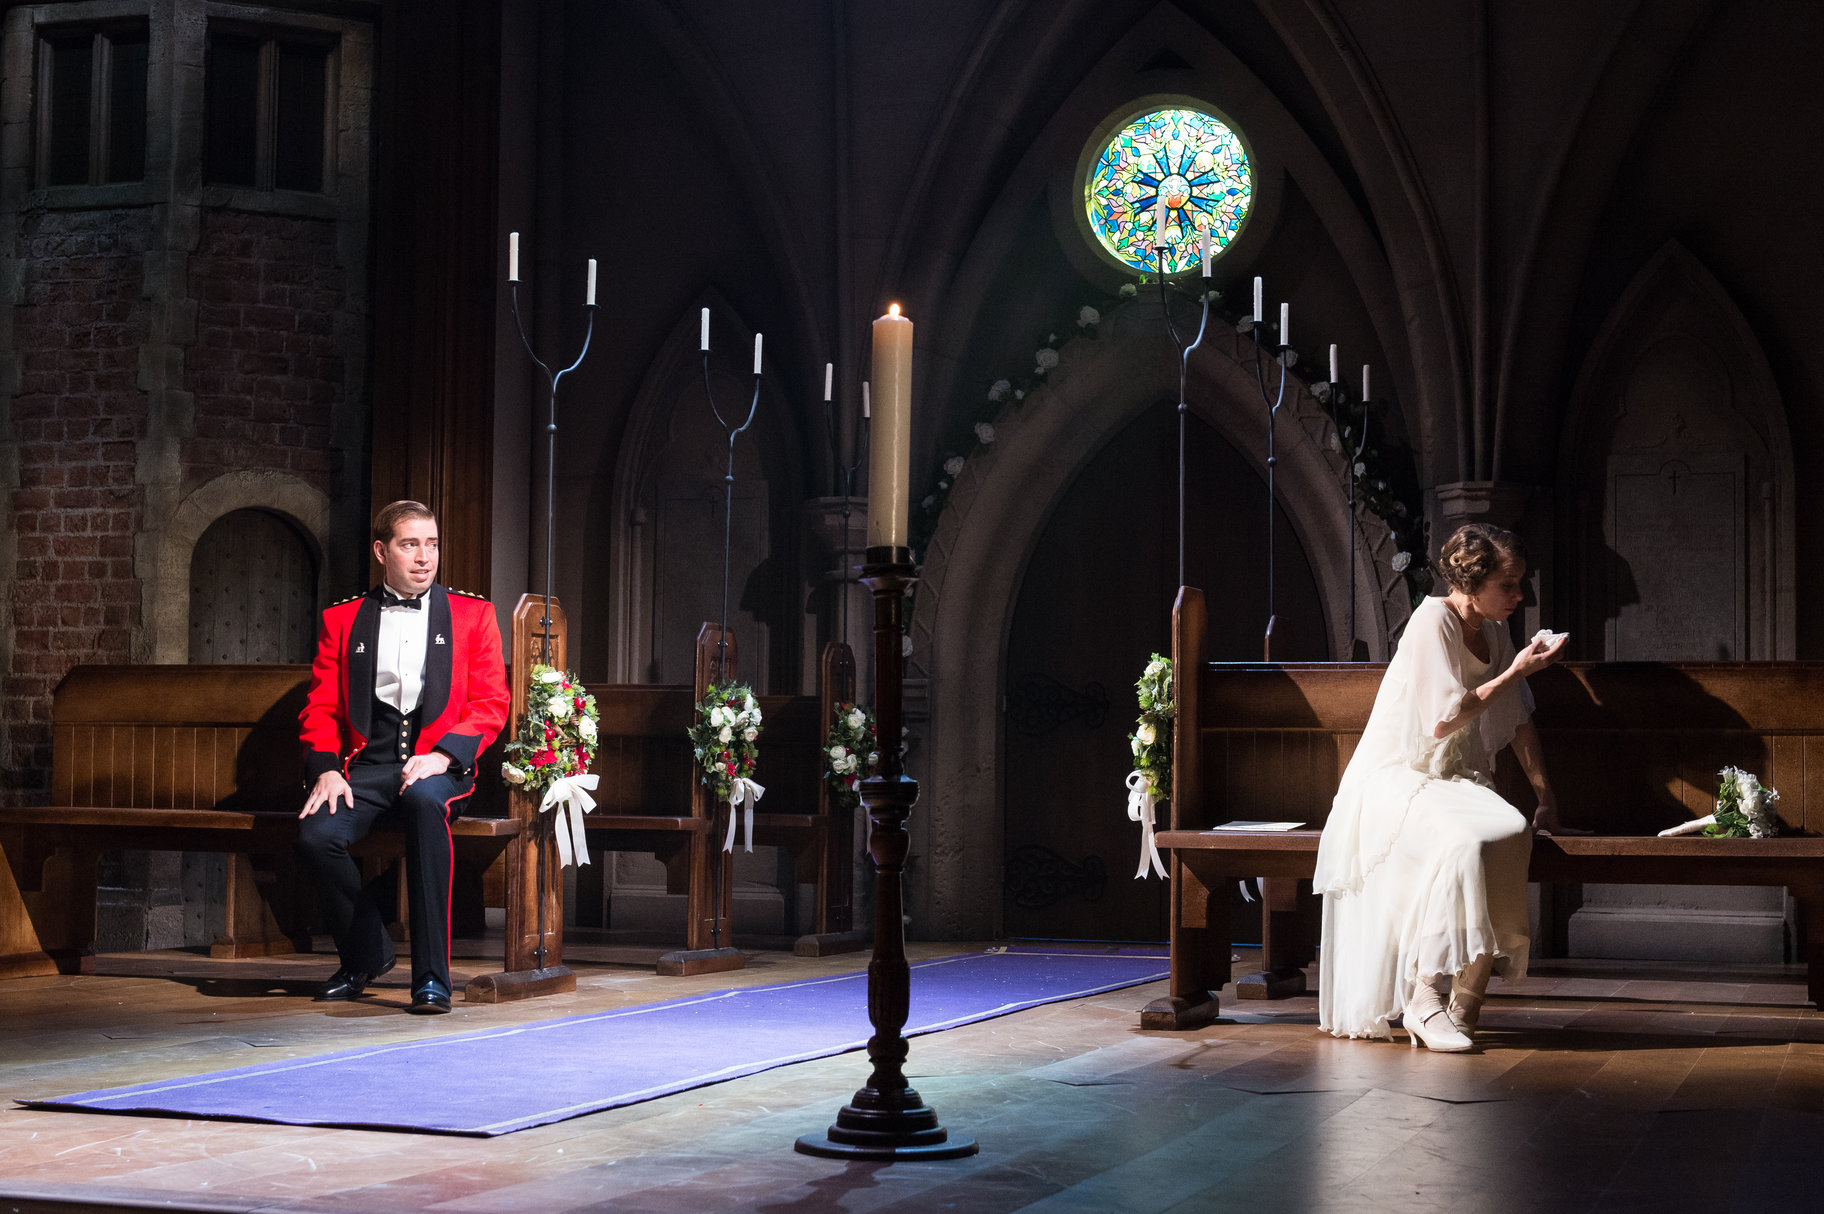 A man looks at a crying woman in a church.